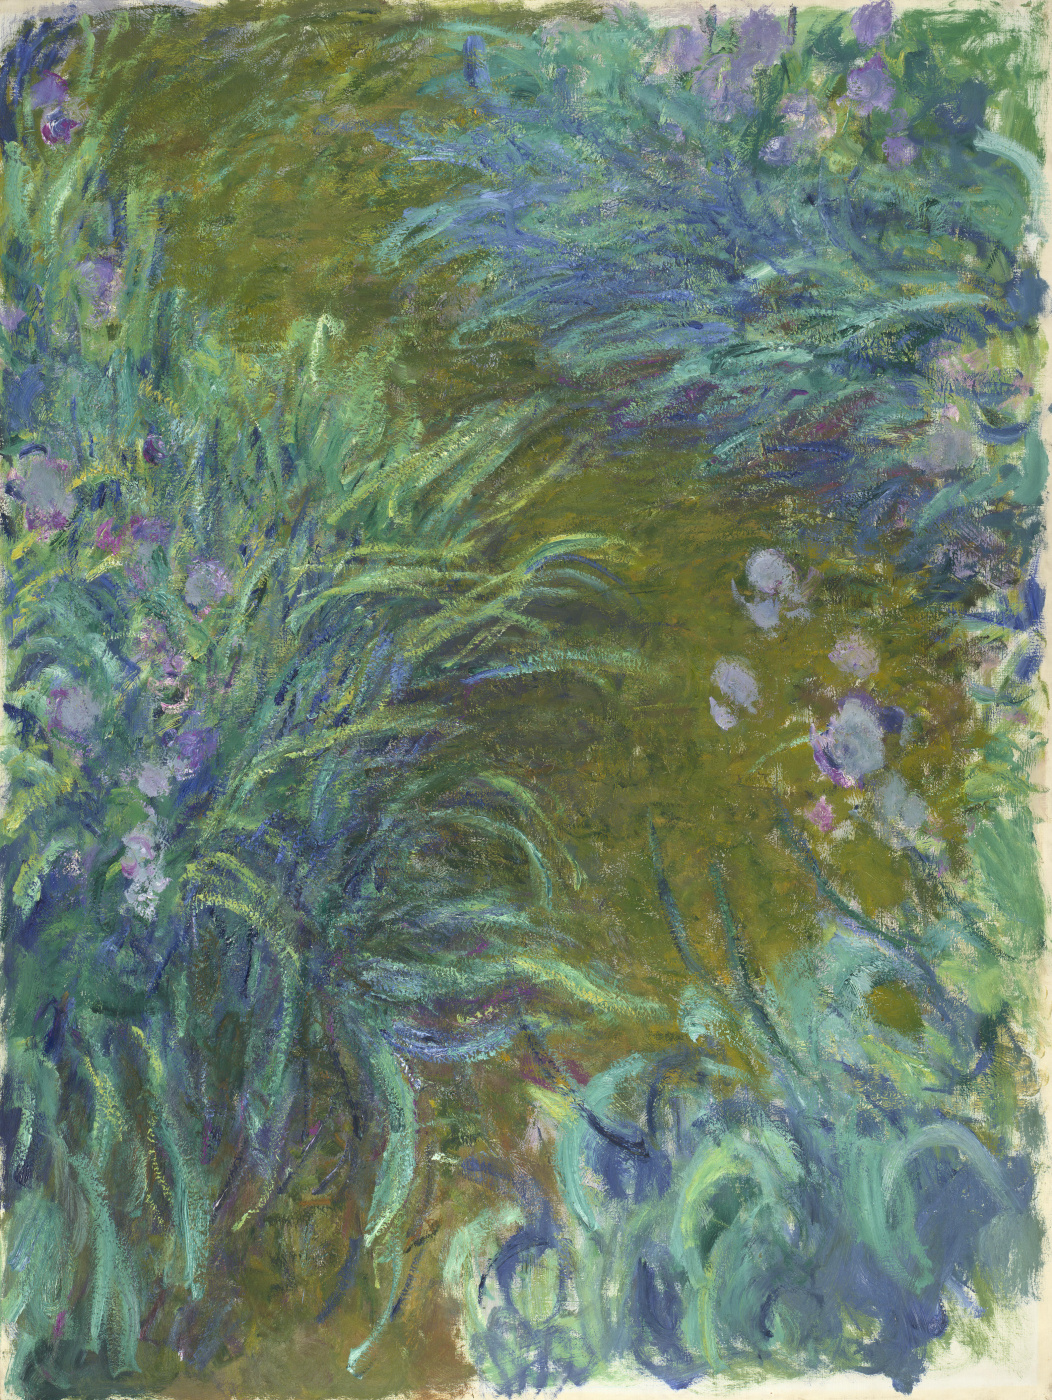 Claude Monet. The path in the iris